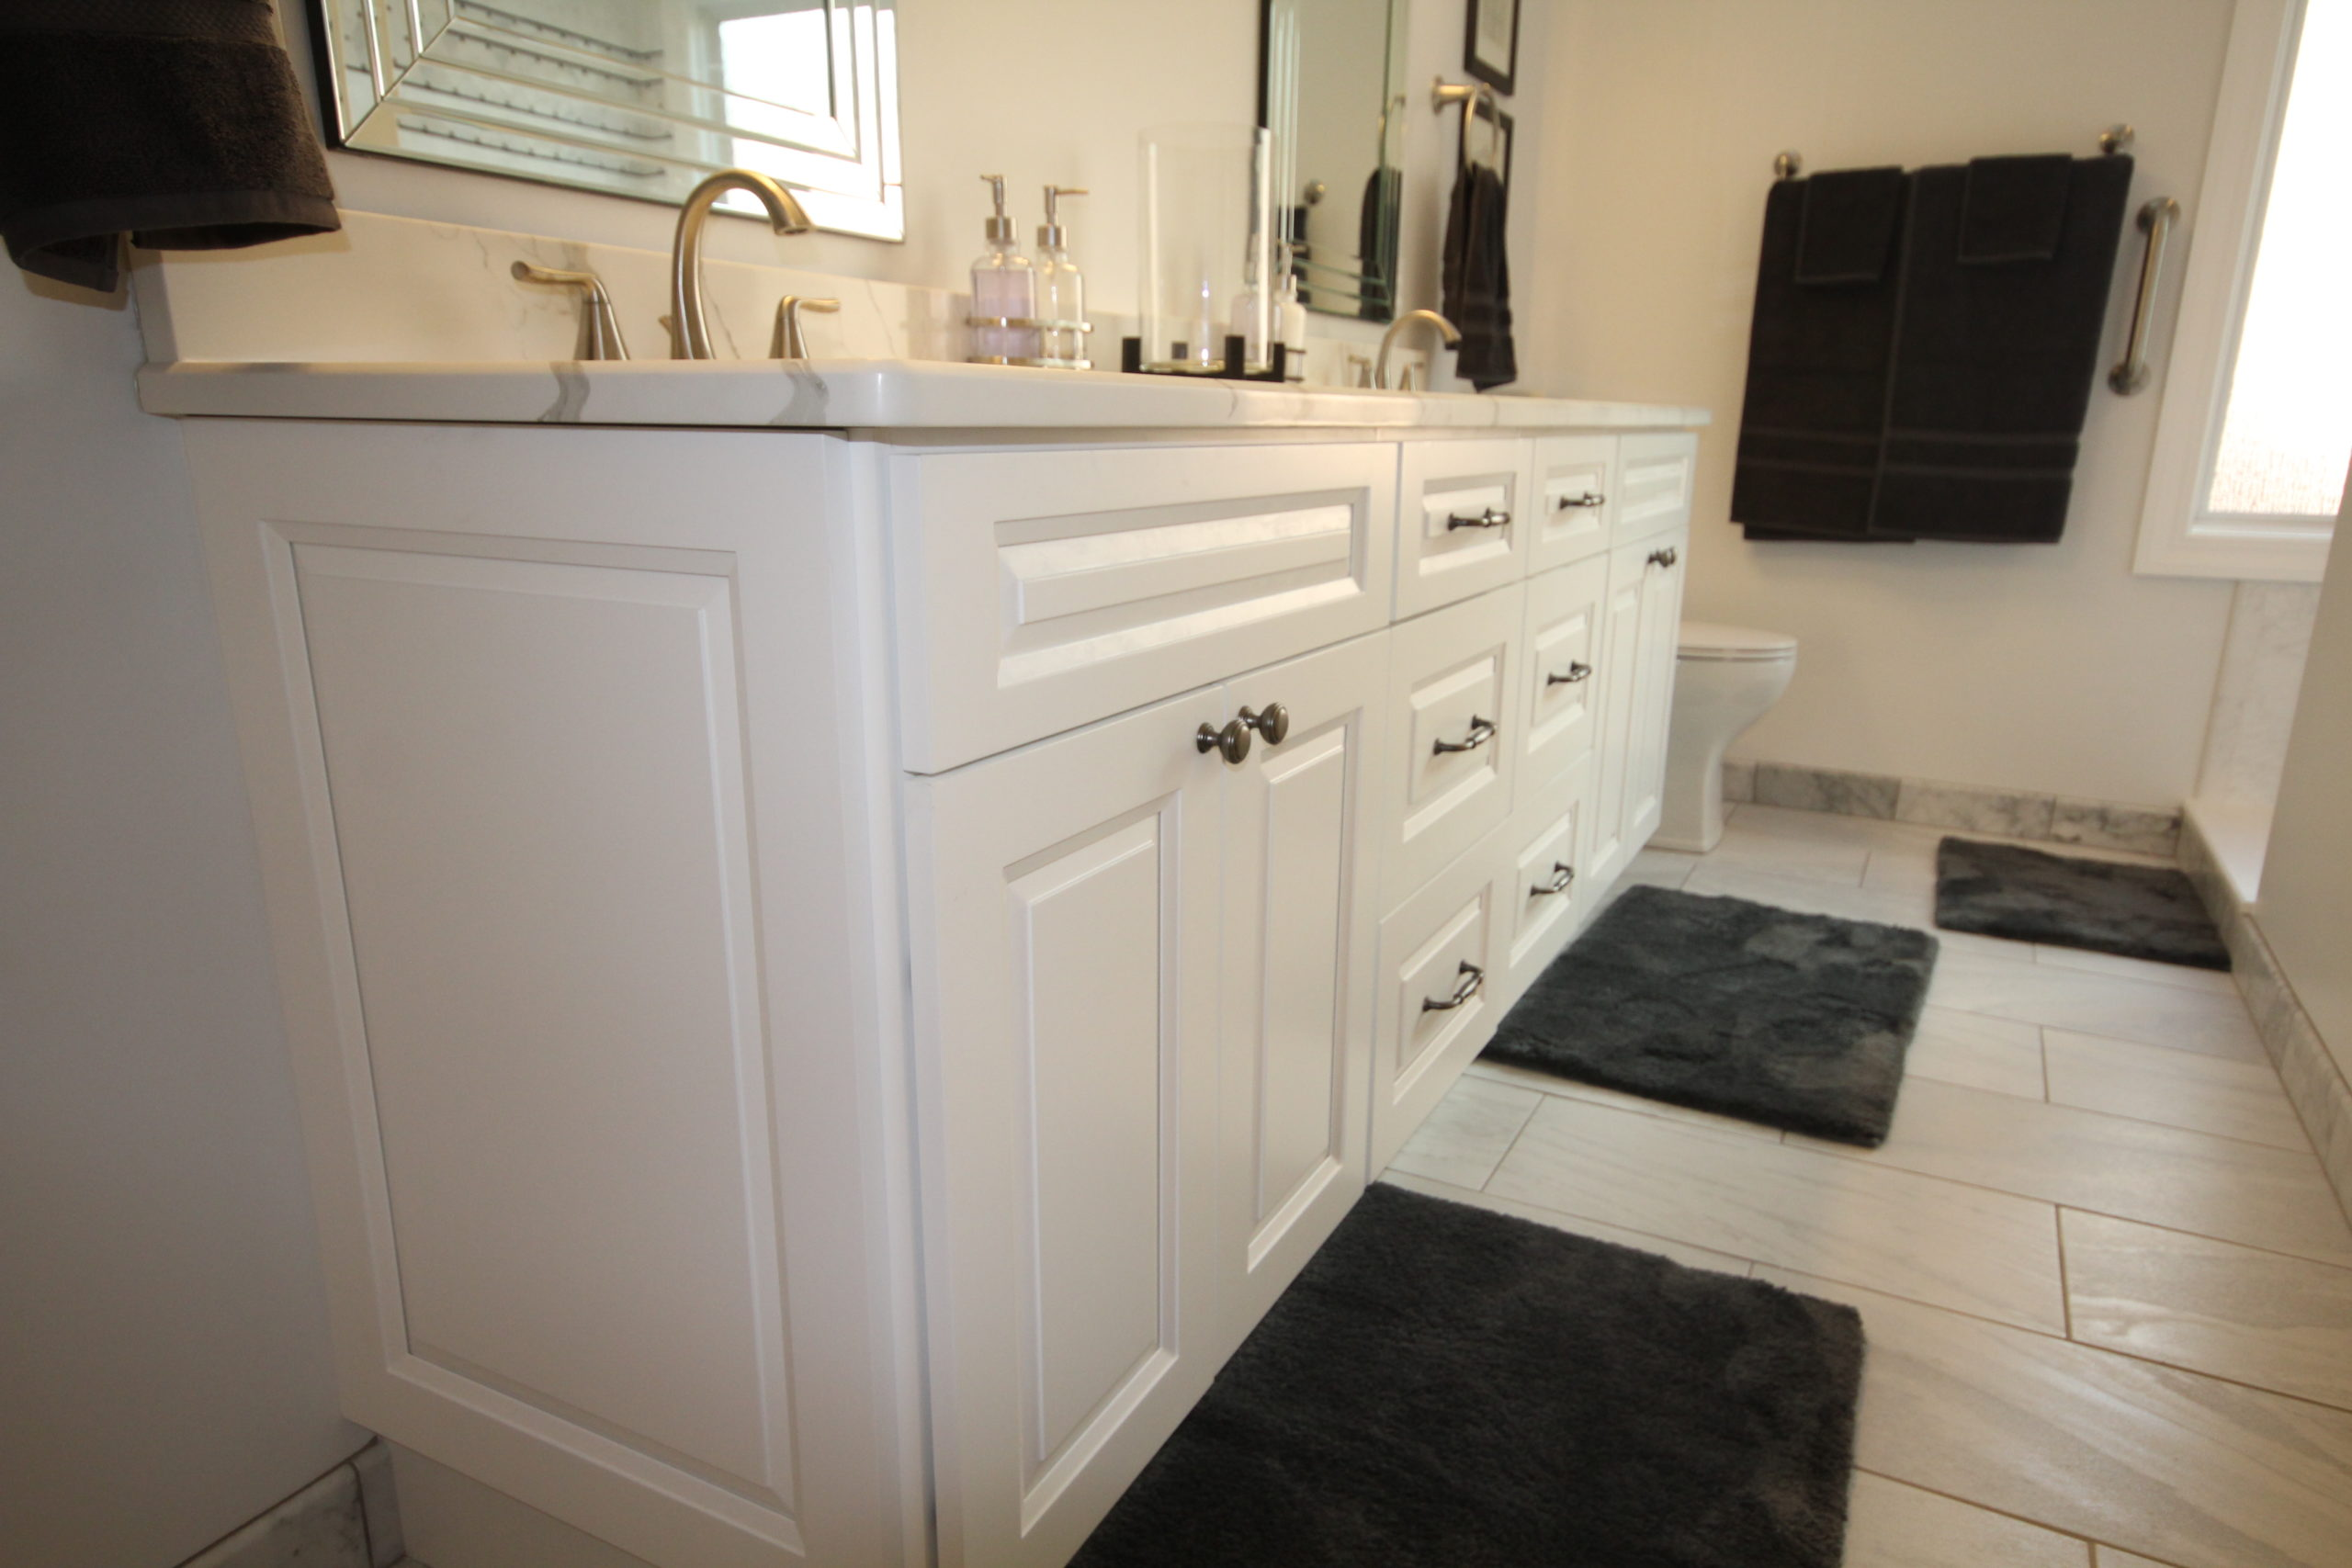 bathroom-remodeling-work-TAG-Builders-209-GV-Bathroom-Remodel-7-scaled